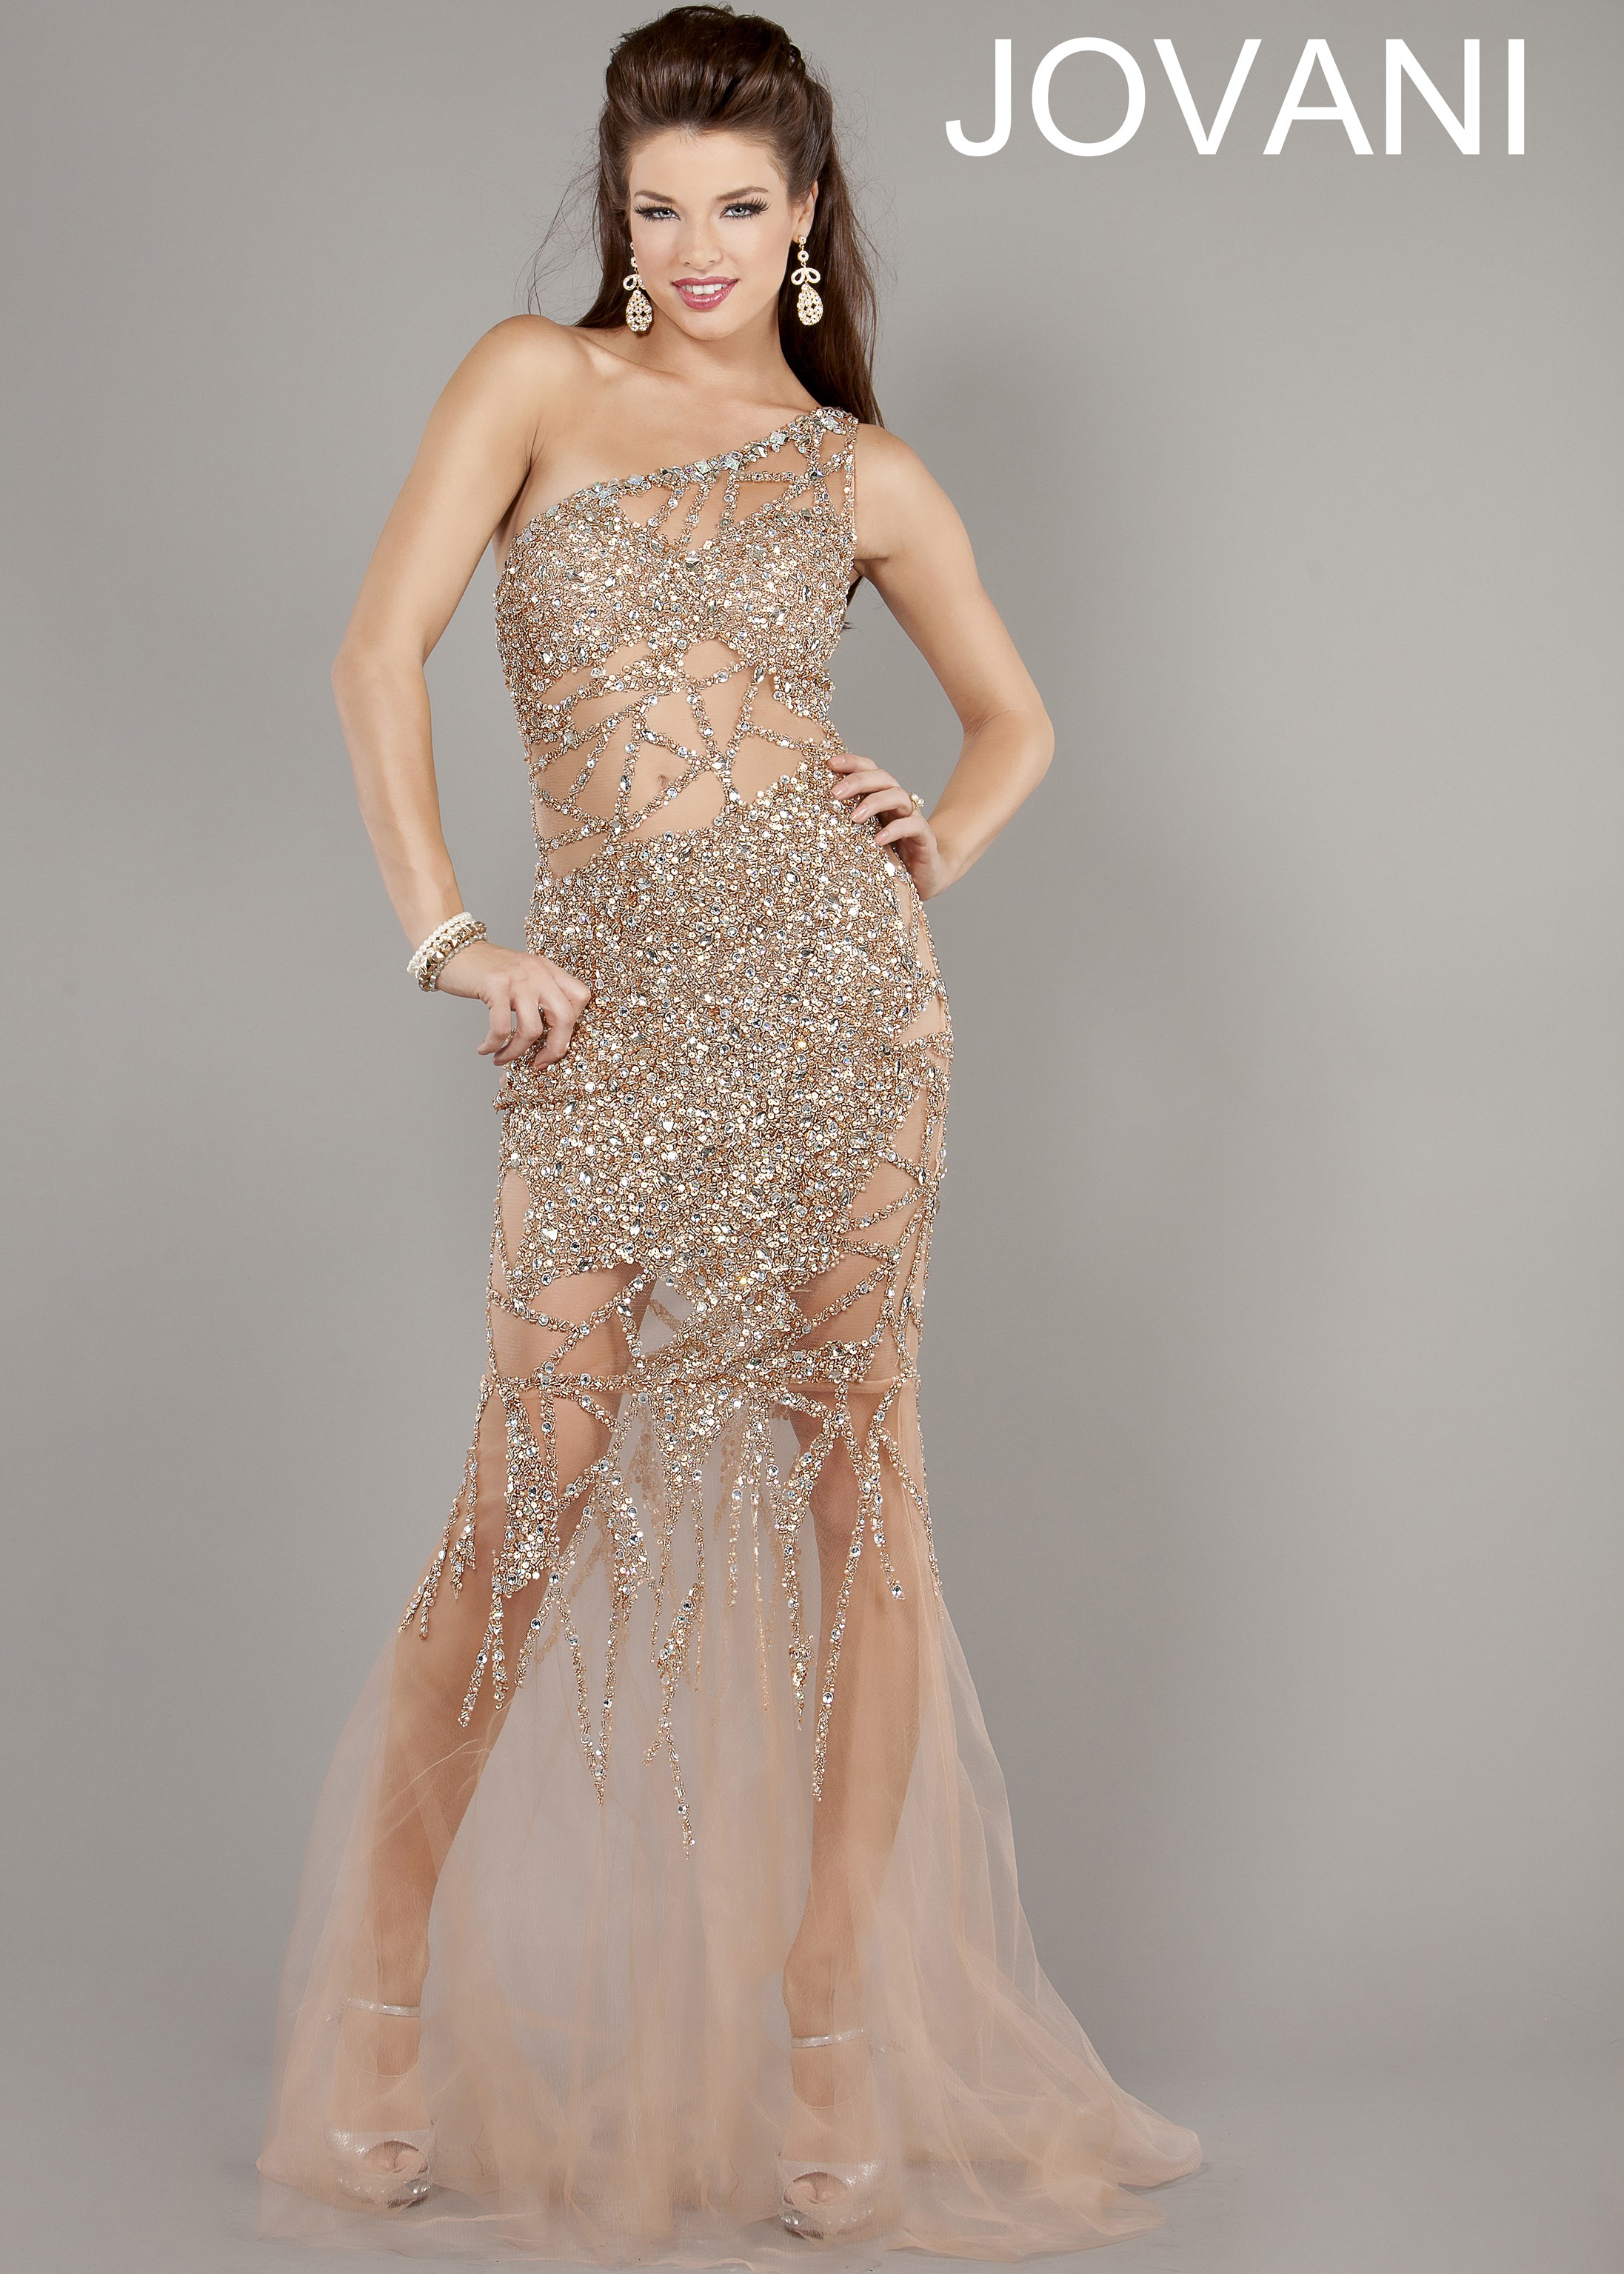 Jovani 6395 - Nude One Shoulder Illusion Evening Gowns, Prom Dresses ...